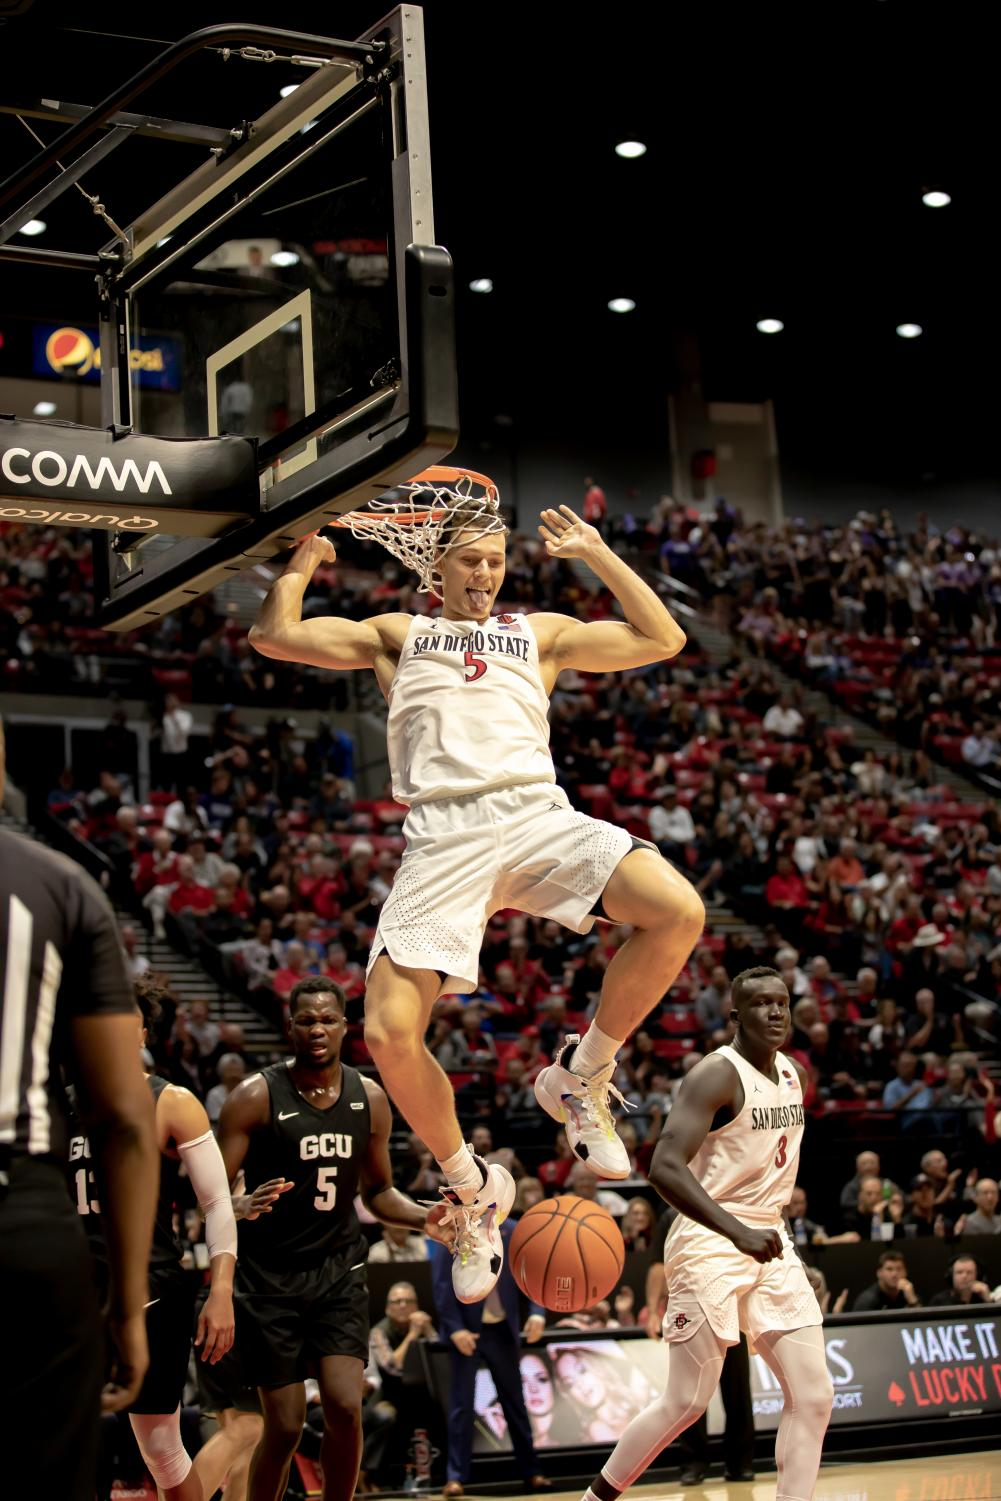 Senior forward Yanni Wetzell finishes a dunk in the Aztecs' 86-61 win over Grand Canyon University at Nov. 13 at Viejas Arena.